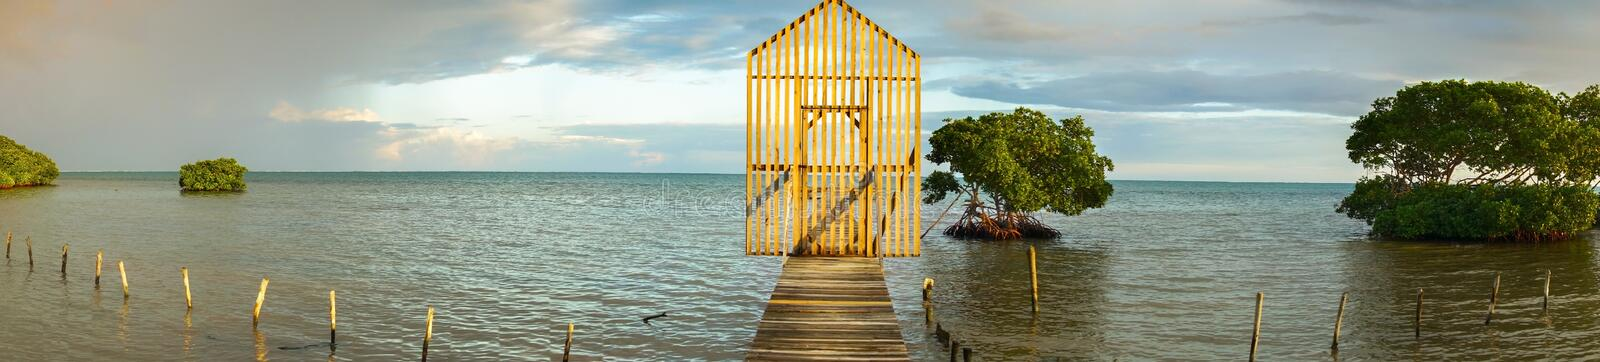 Isolated Wooden Gate Fishing Dock Pier Caye Caulker Caribbean Sea Belize Panoramic View stock photos